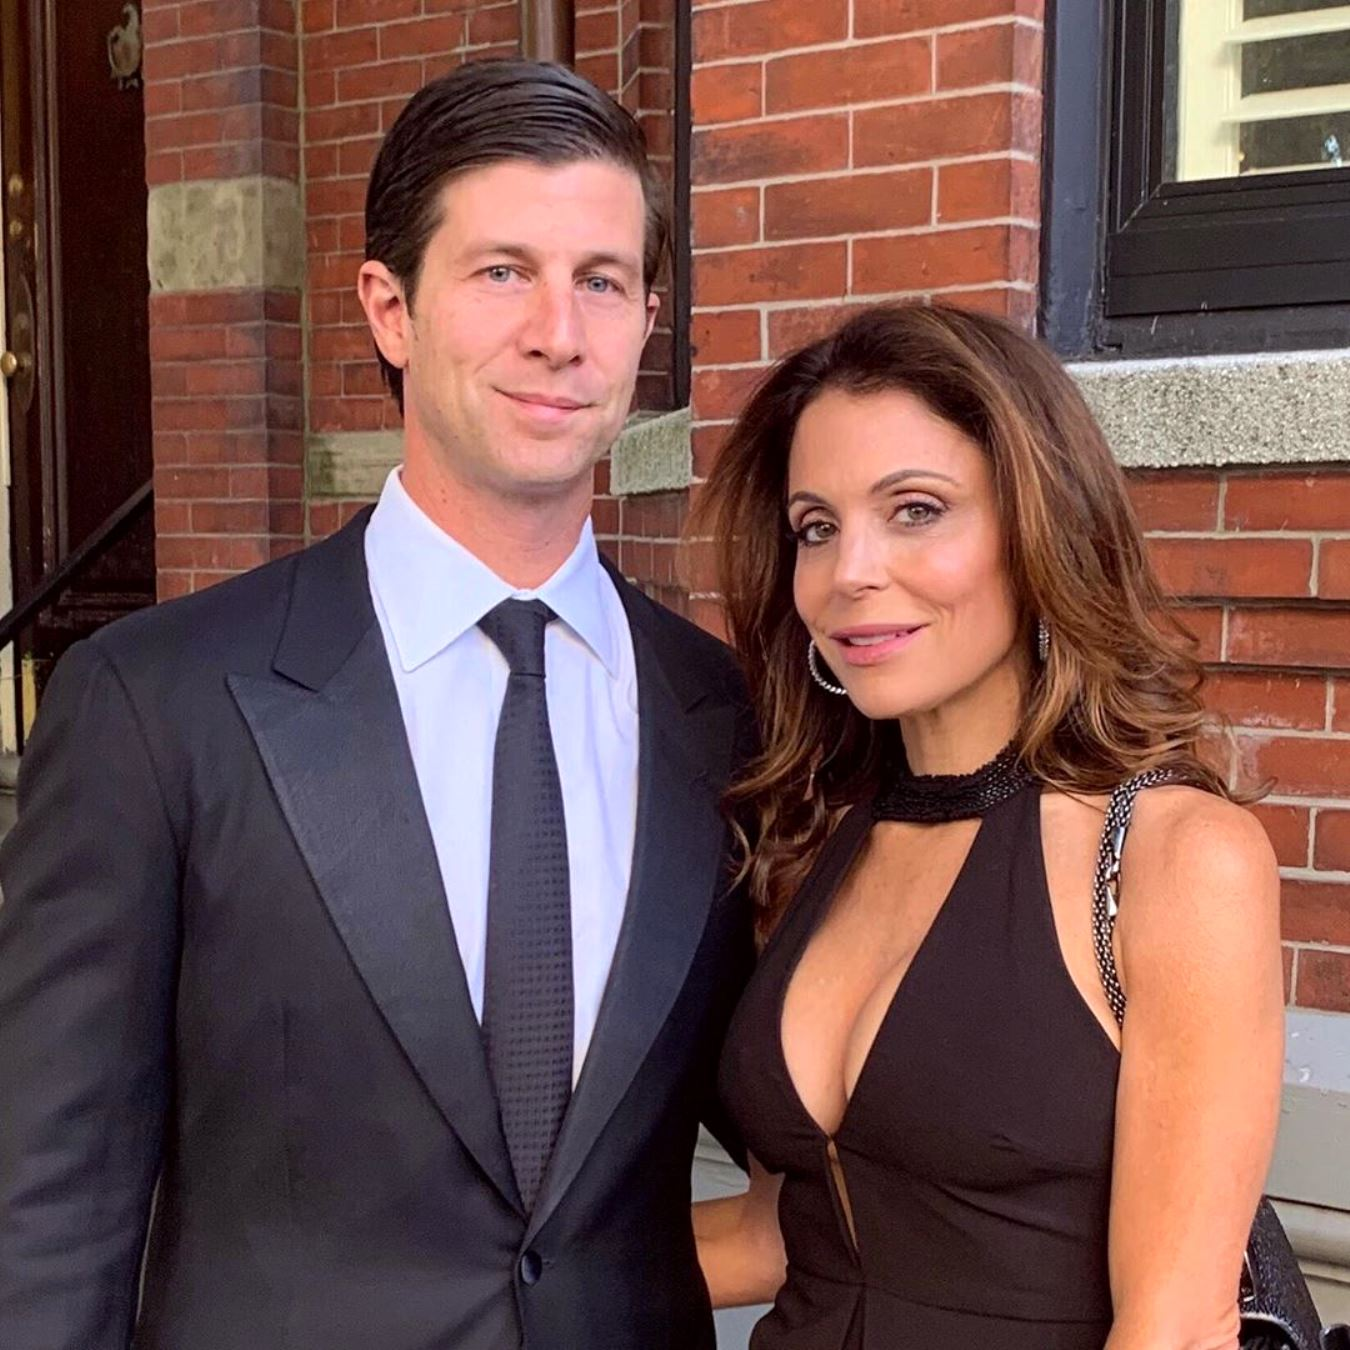 Bethenny Frankel Shares Photo with Boyfriend Paul Bernon | The Daily Dish